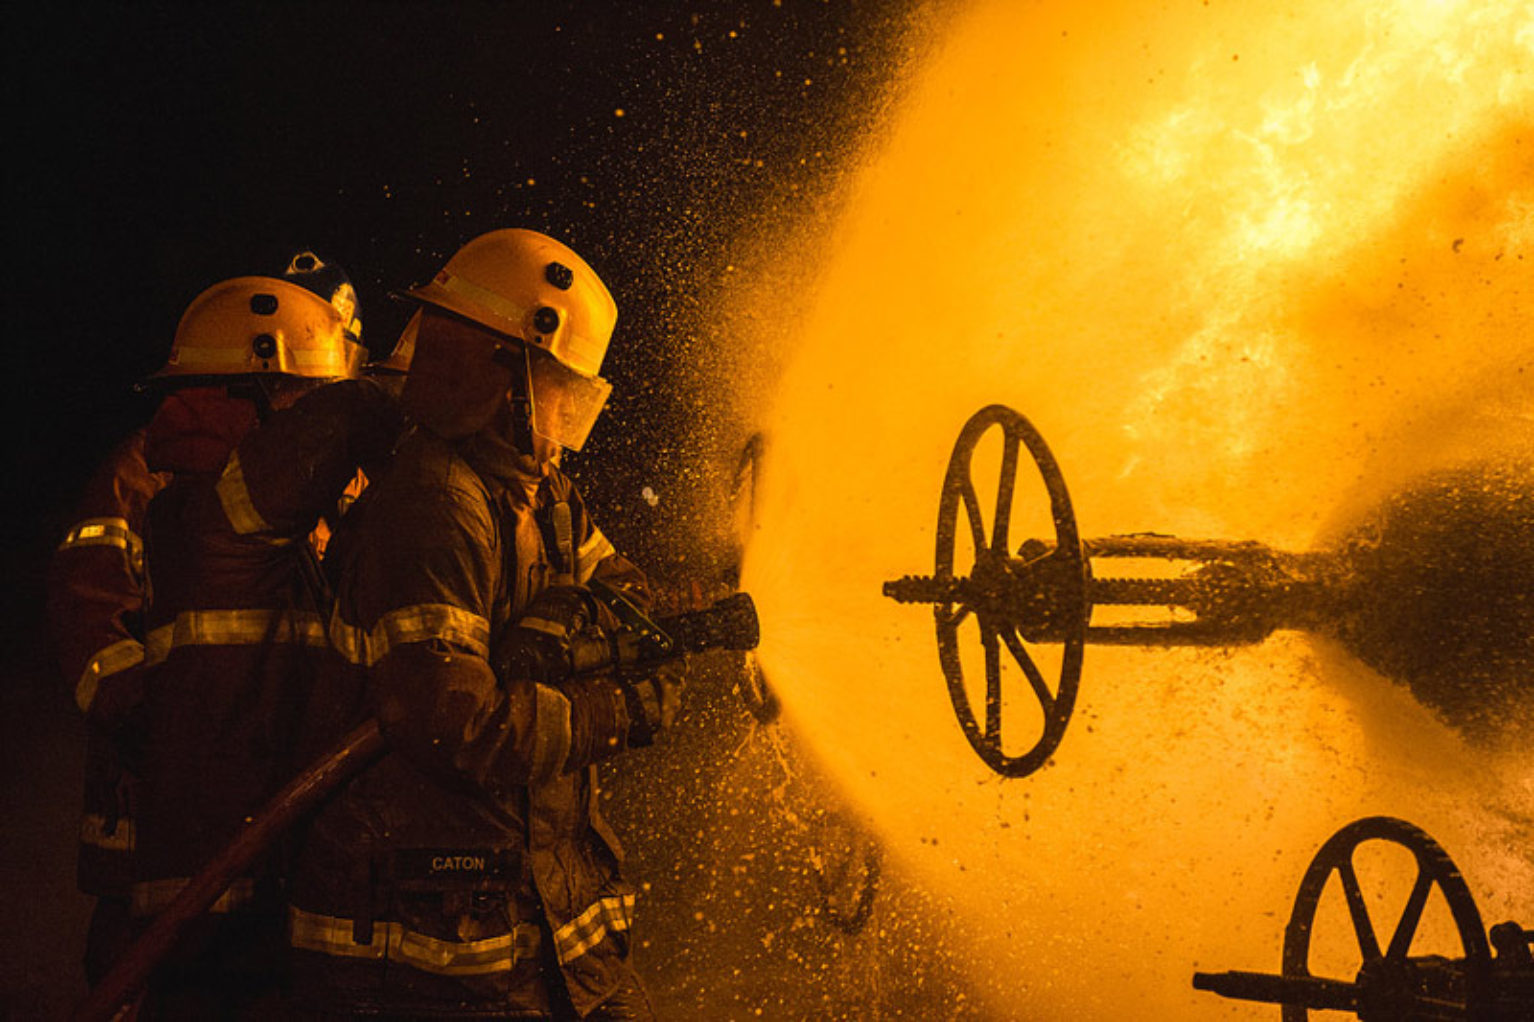 Christopher Chan image of fire fighters